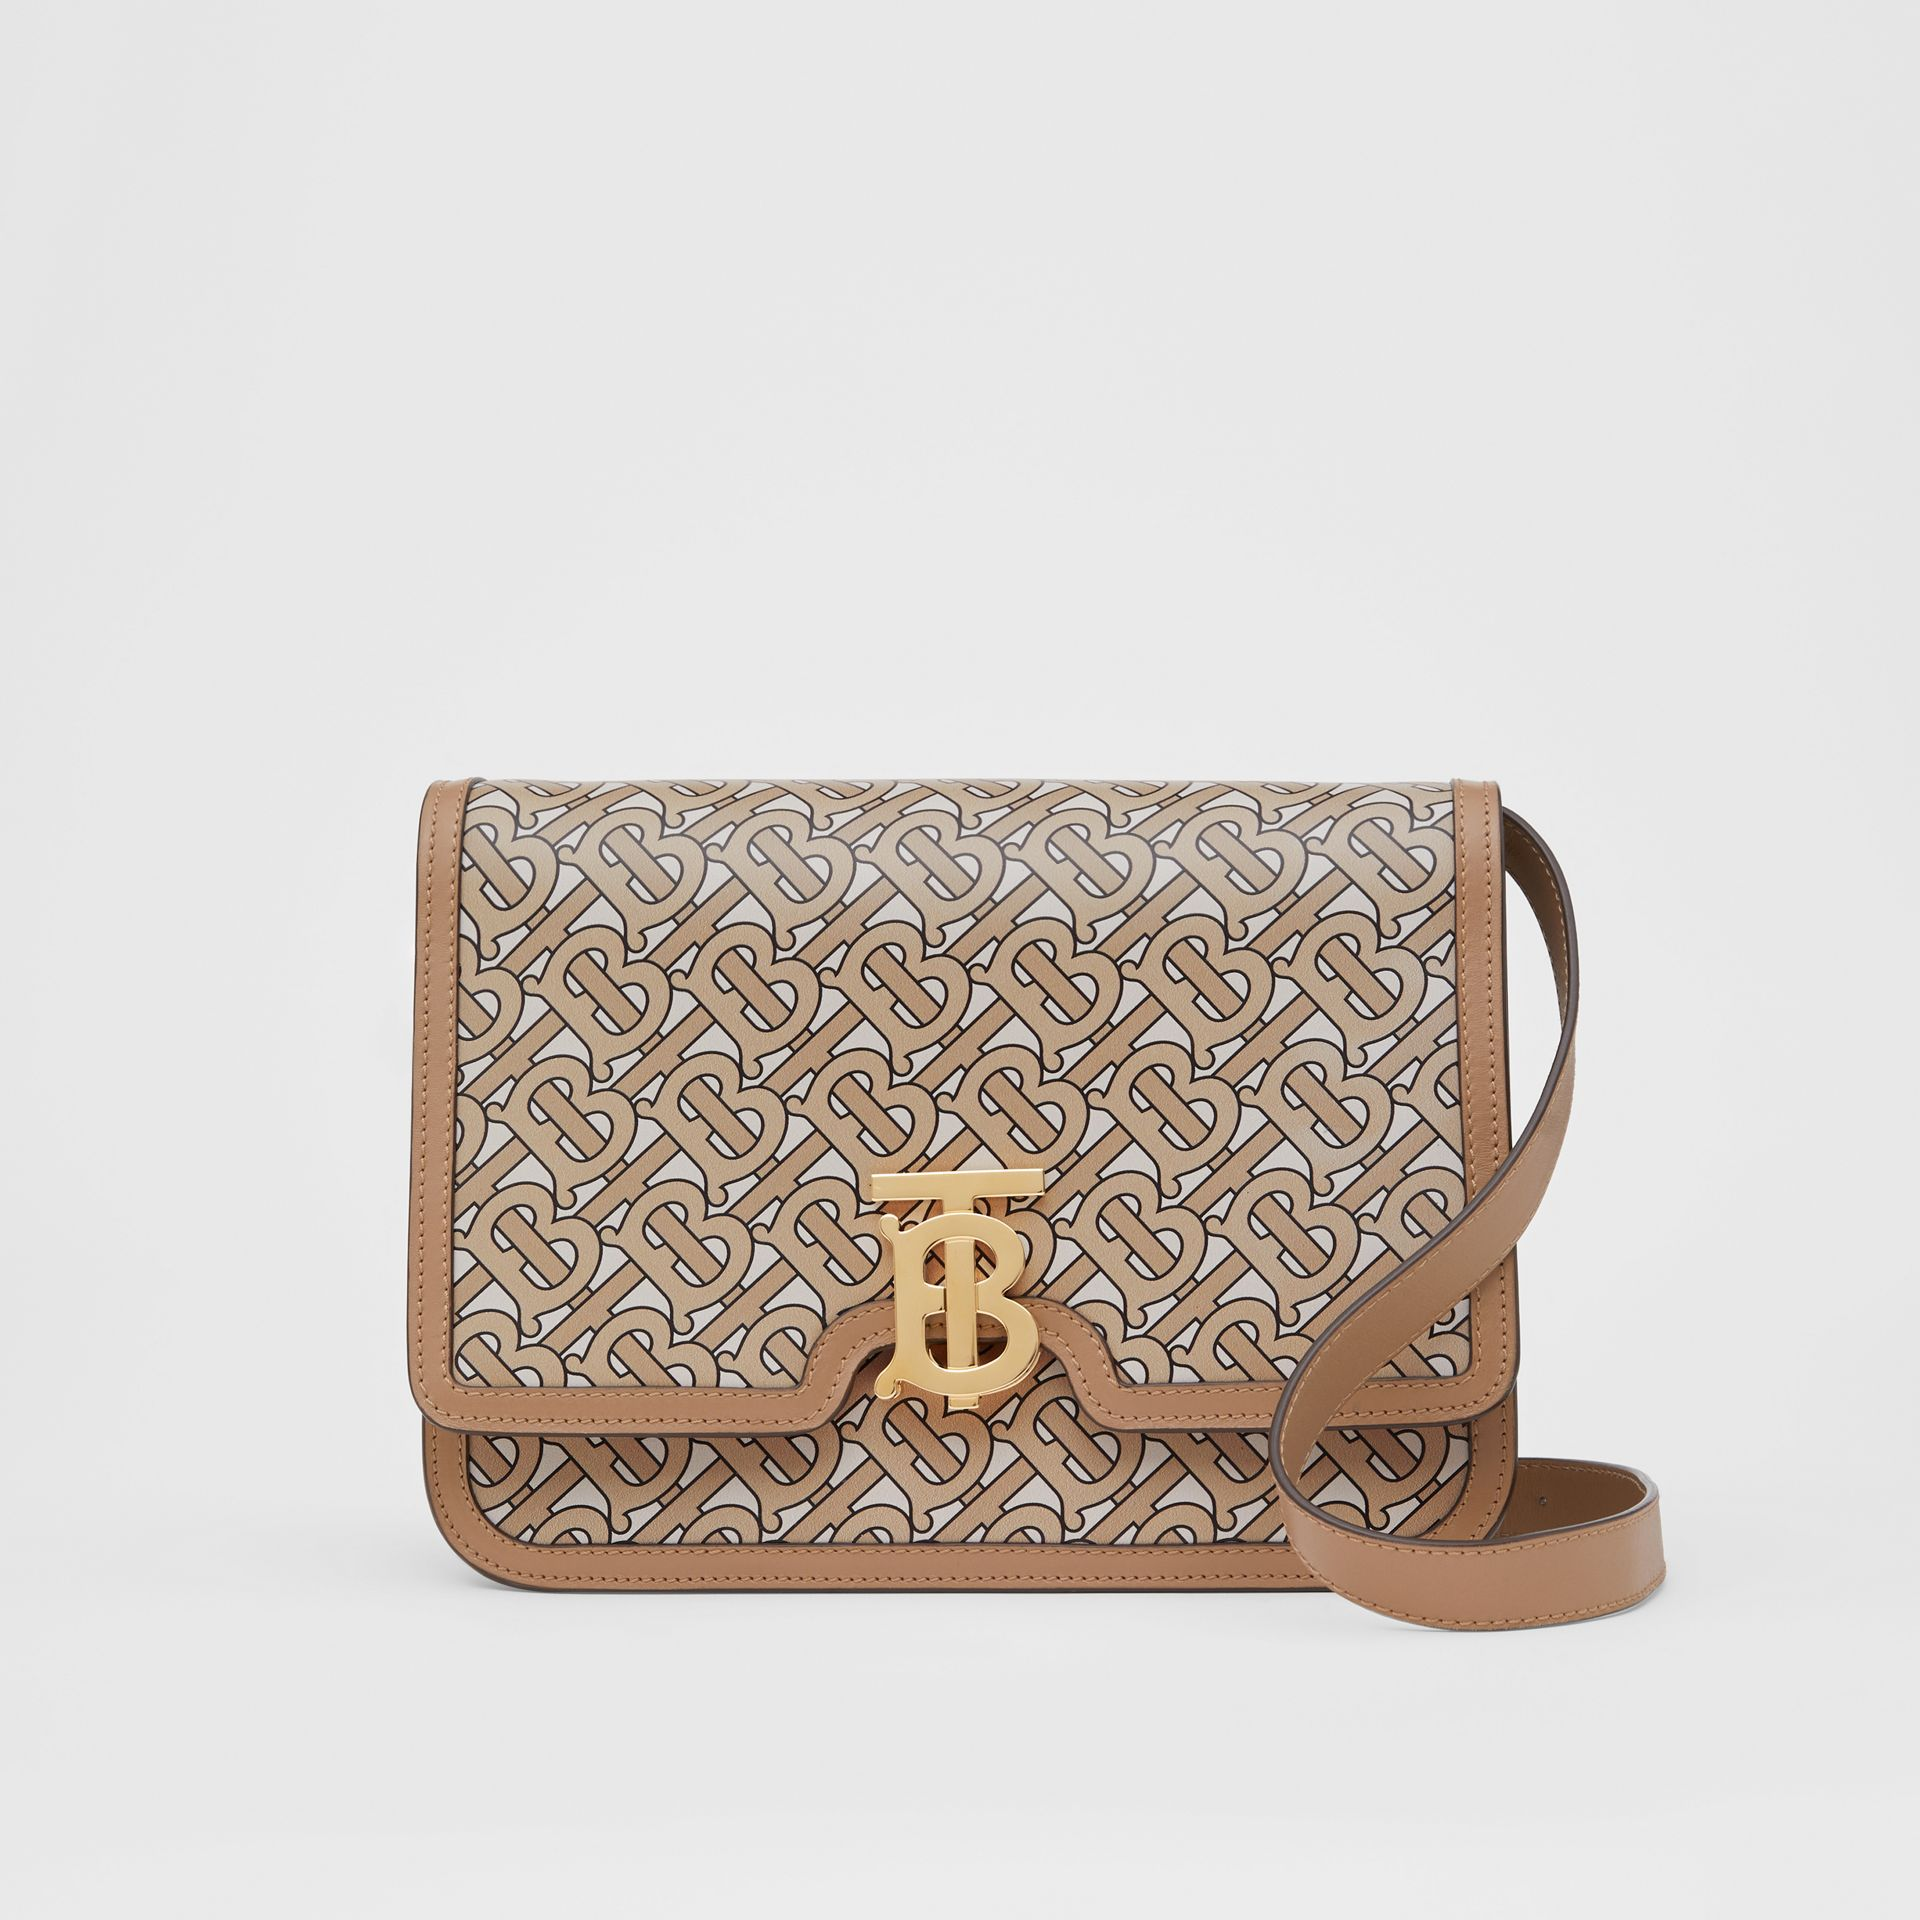 Medium Monogram Print Leather TB Bag in Beige - Women | Burberry - gallery image 0